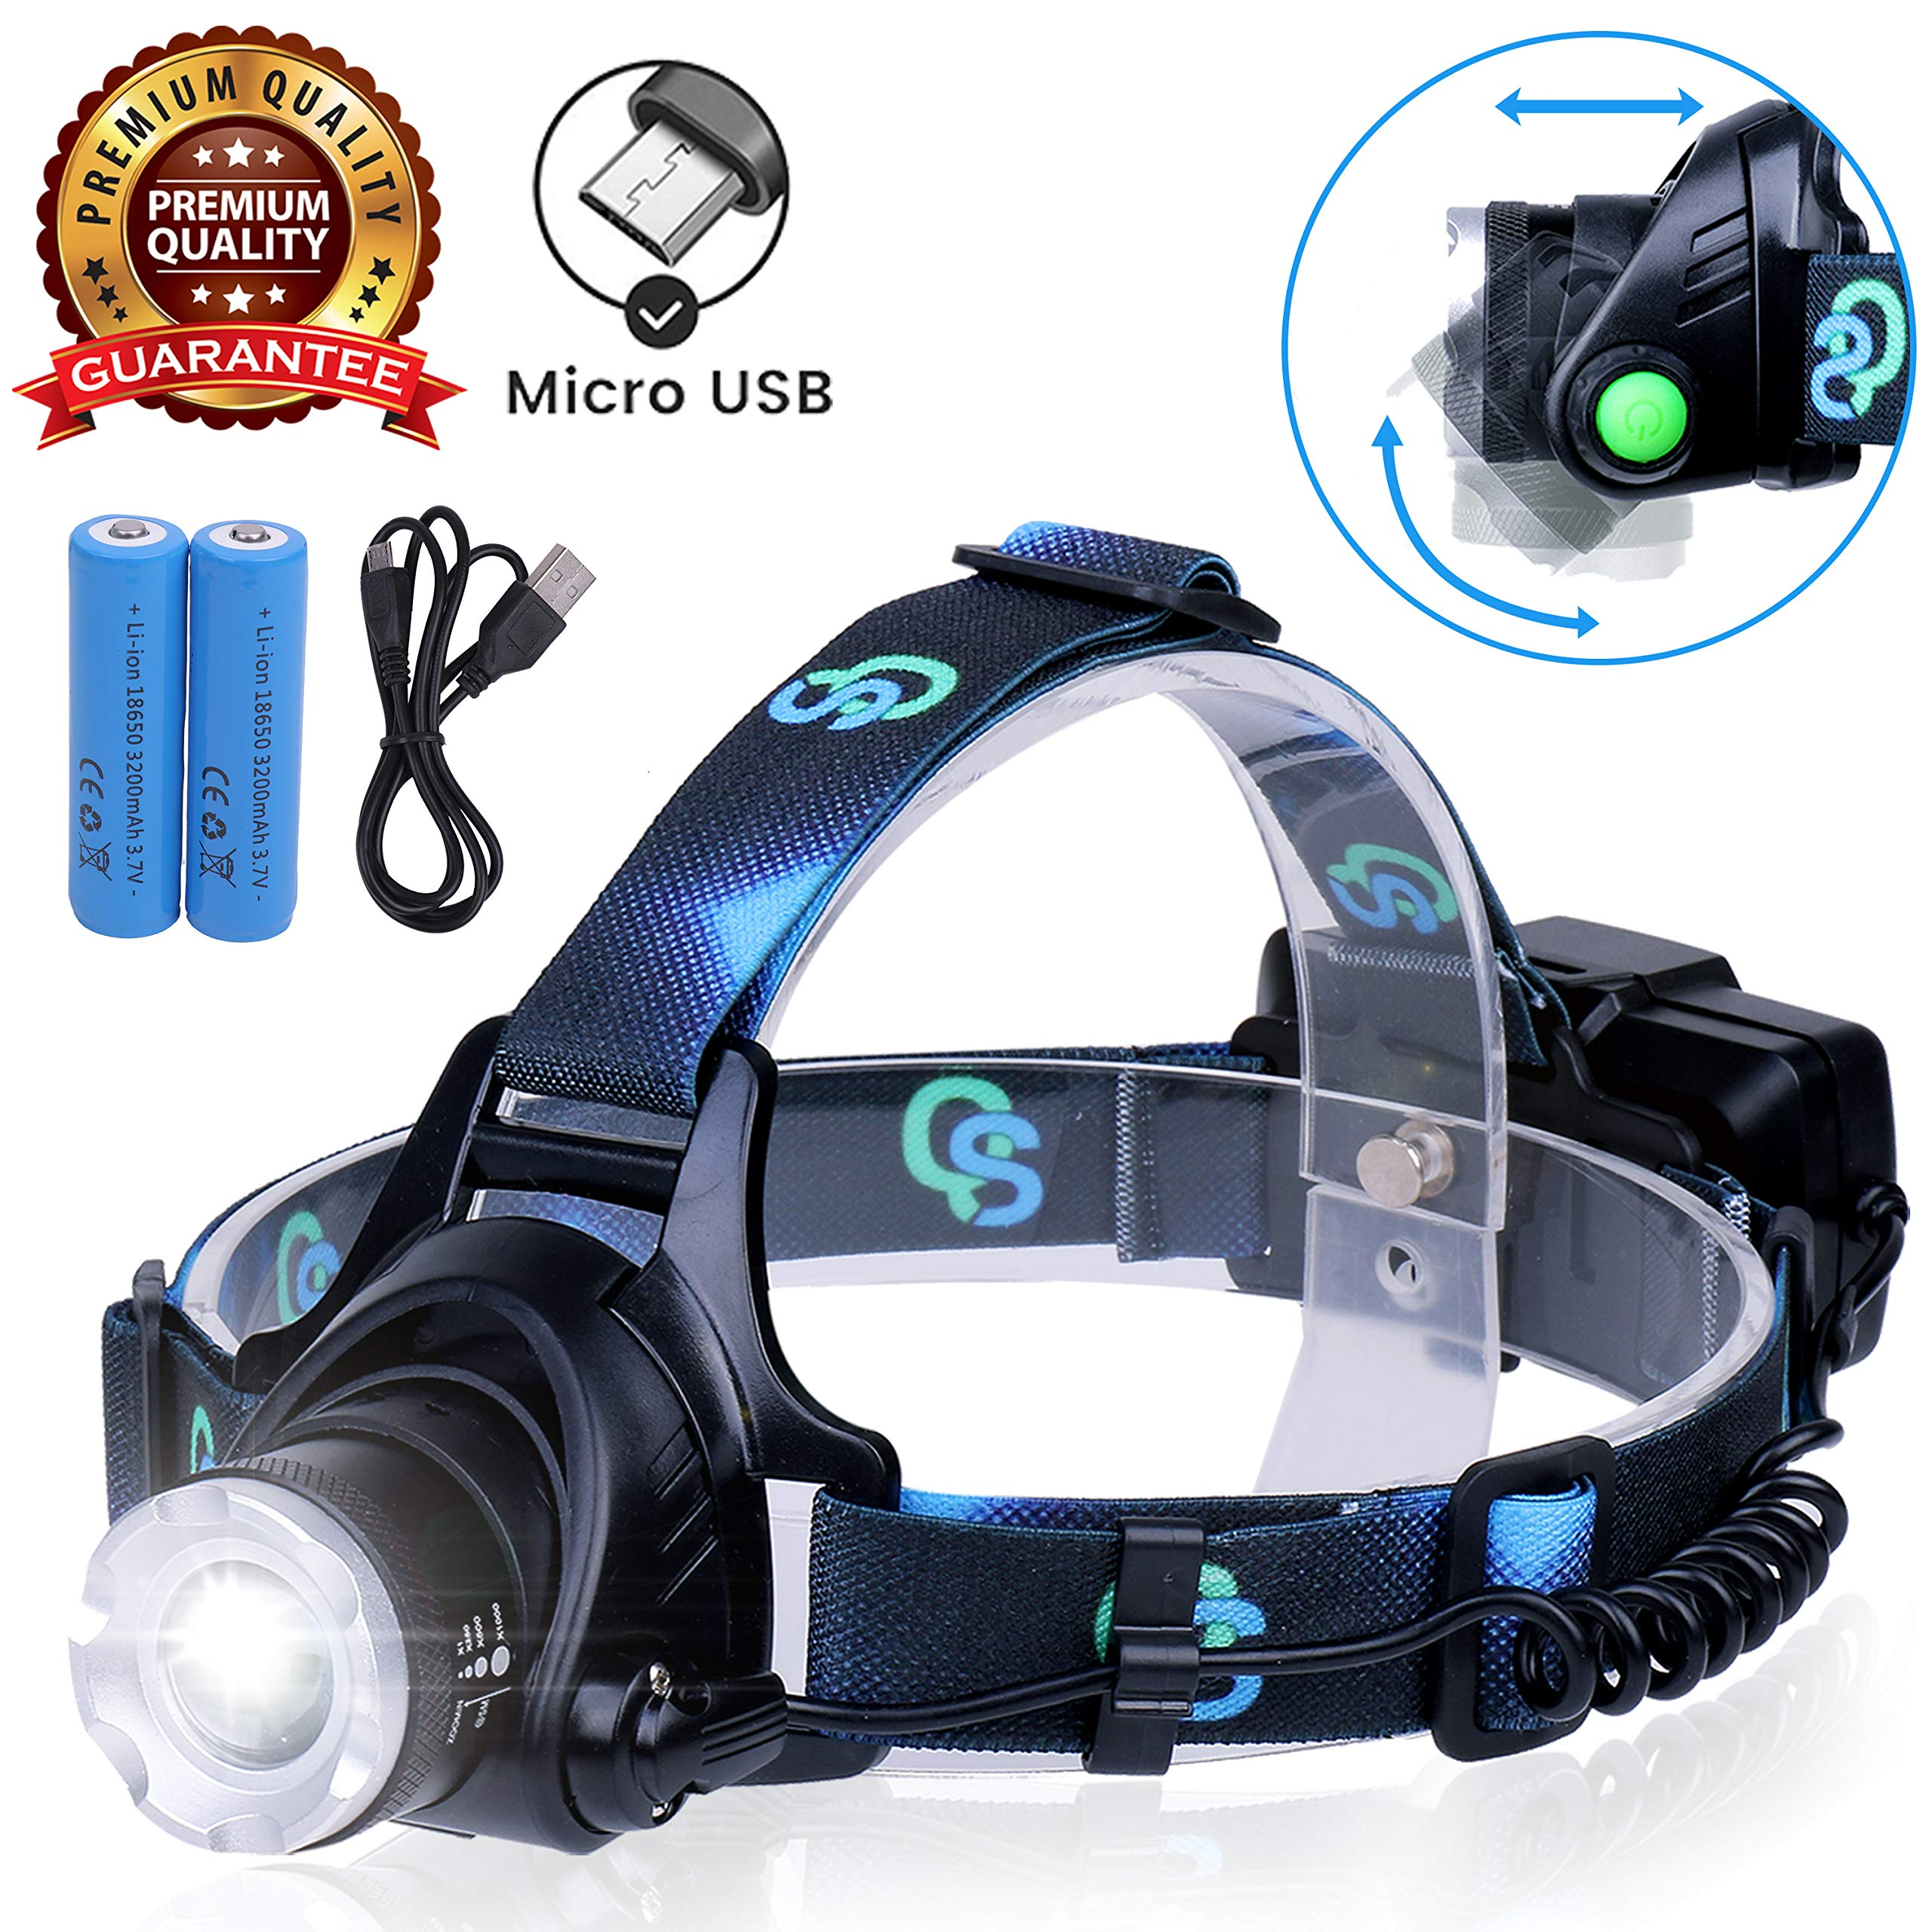 Rechargeable Headlamp, Hard Hat Light - Adults LED Headlamp Flashlight, Perfect Headlamps for Camping, Head Lamps for Adults, Head Flashlight, Lamparas Recargables. by QS USA